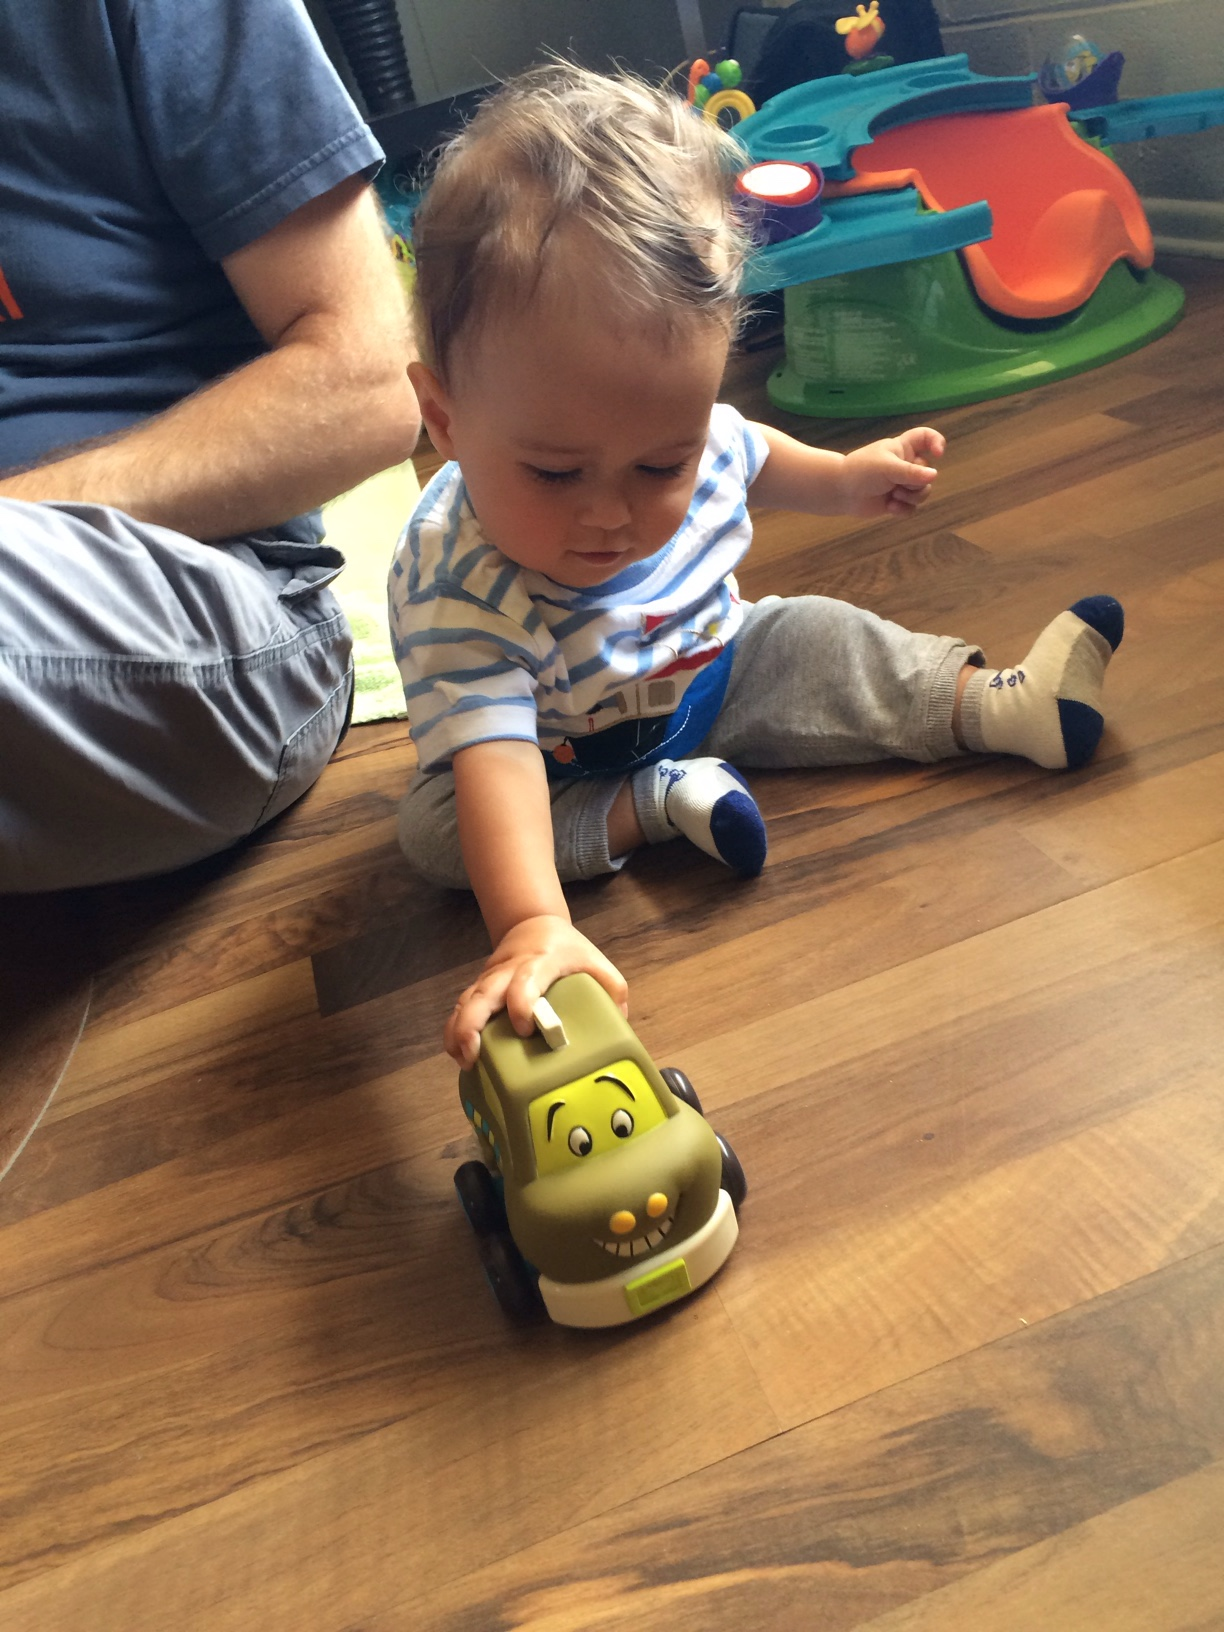 Baby boy o playing with toy car